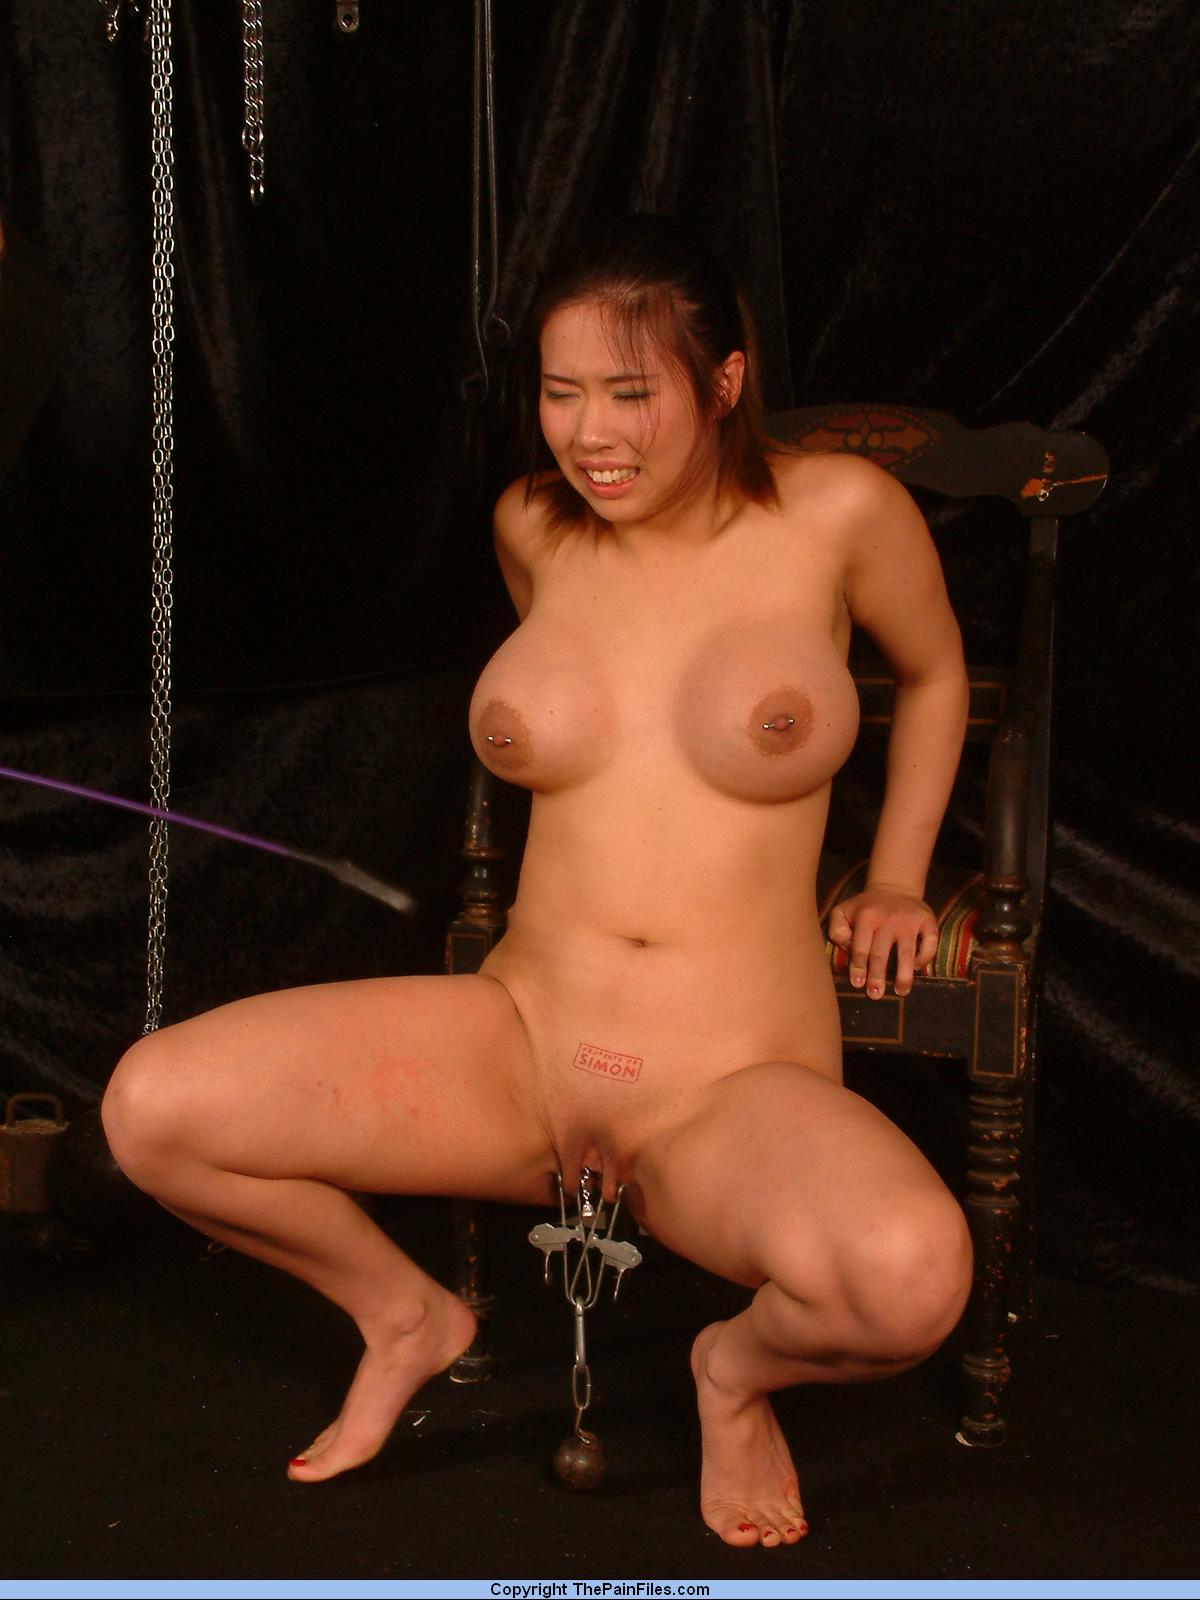 from Clyde asian women in pain pussy